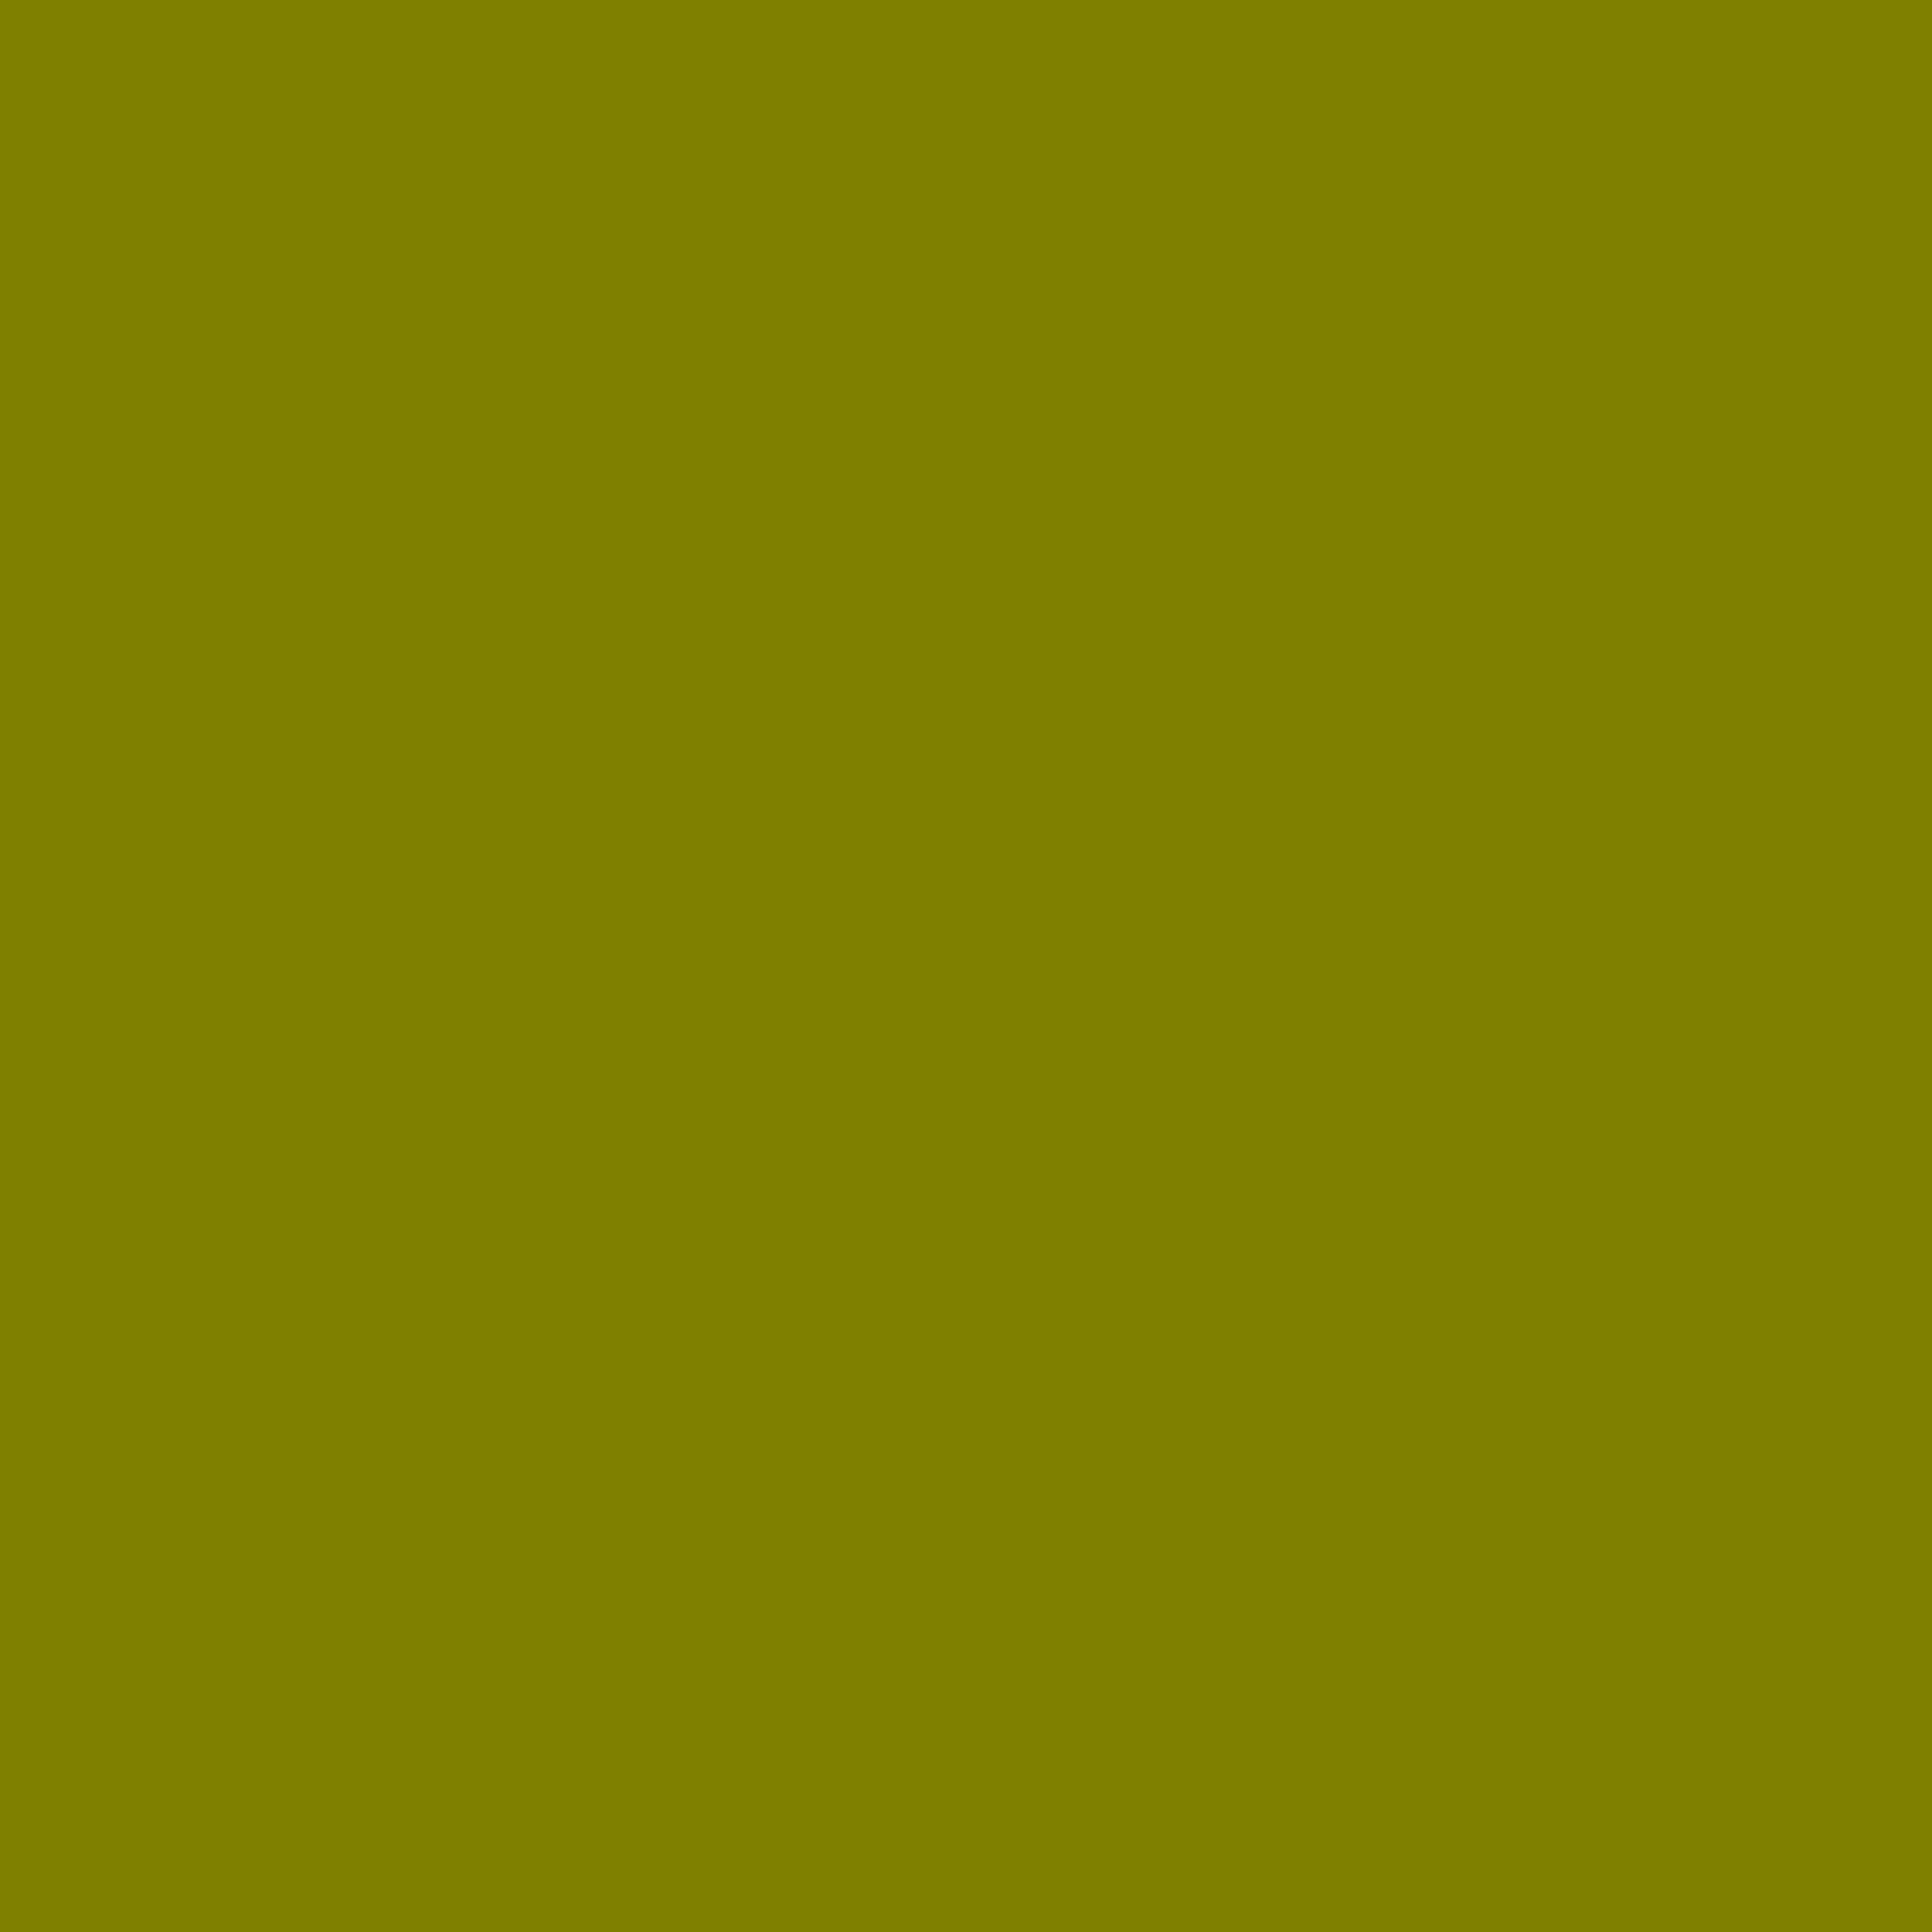 3600x3600 Olive Solid Color Background